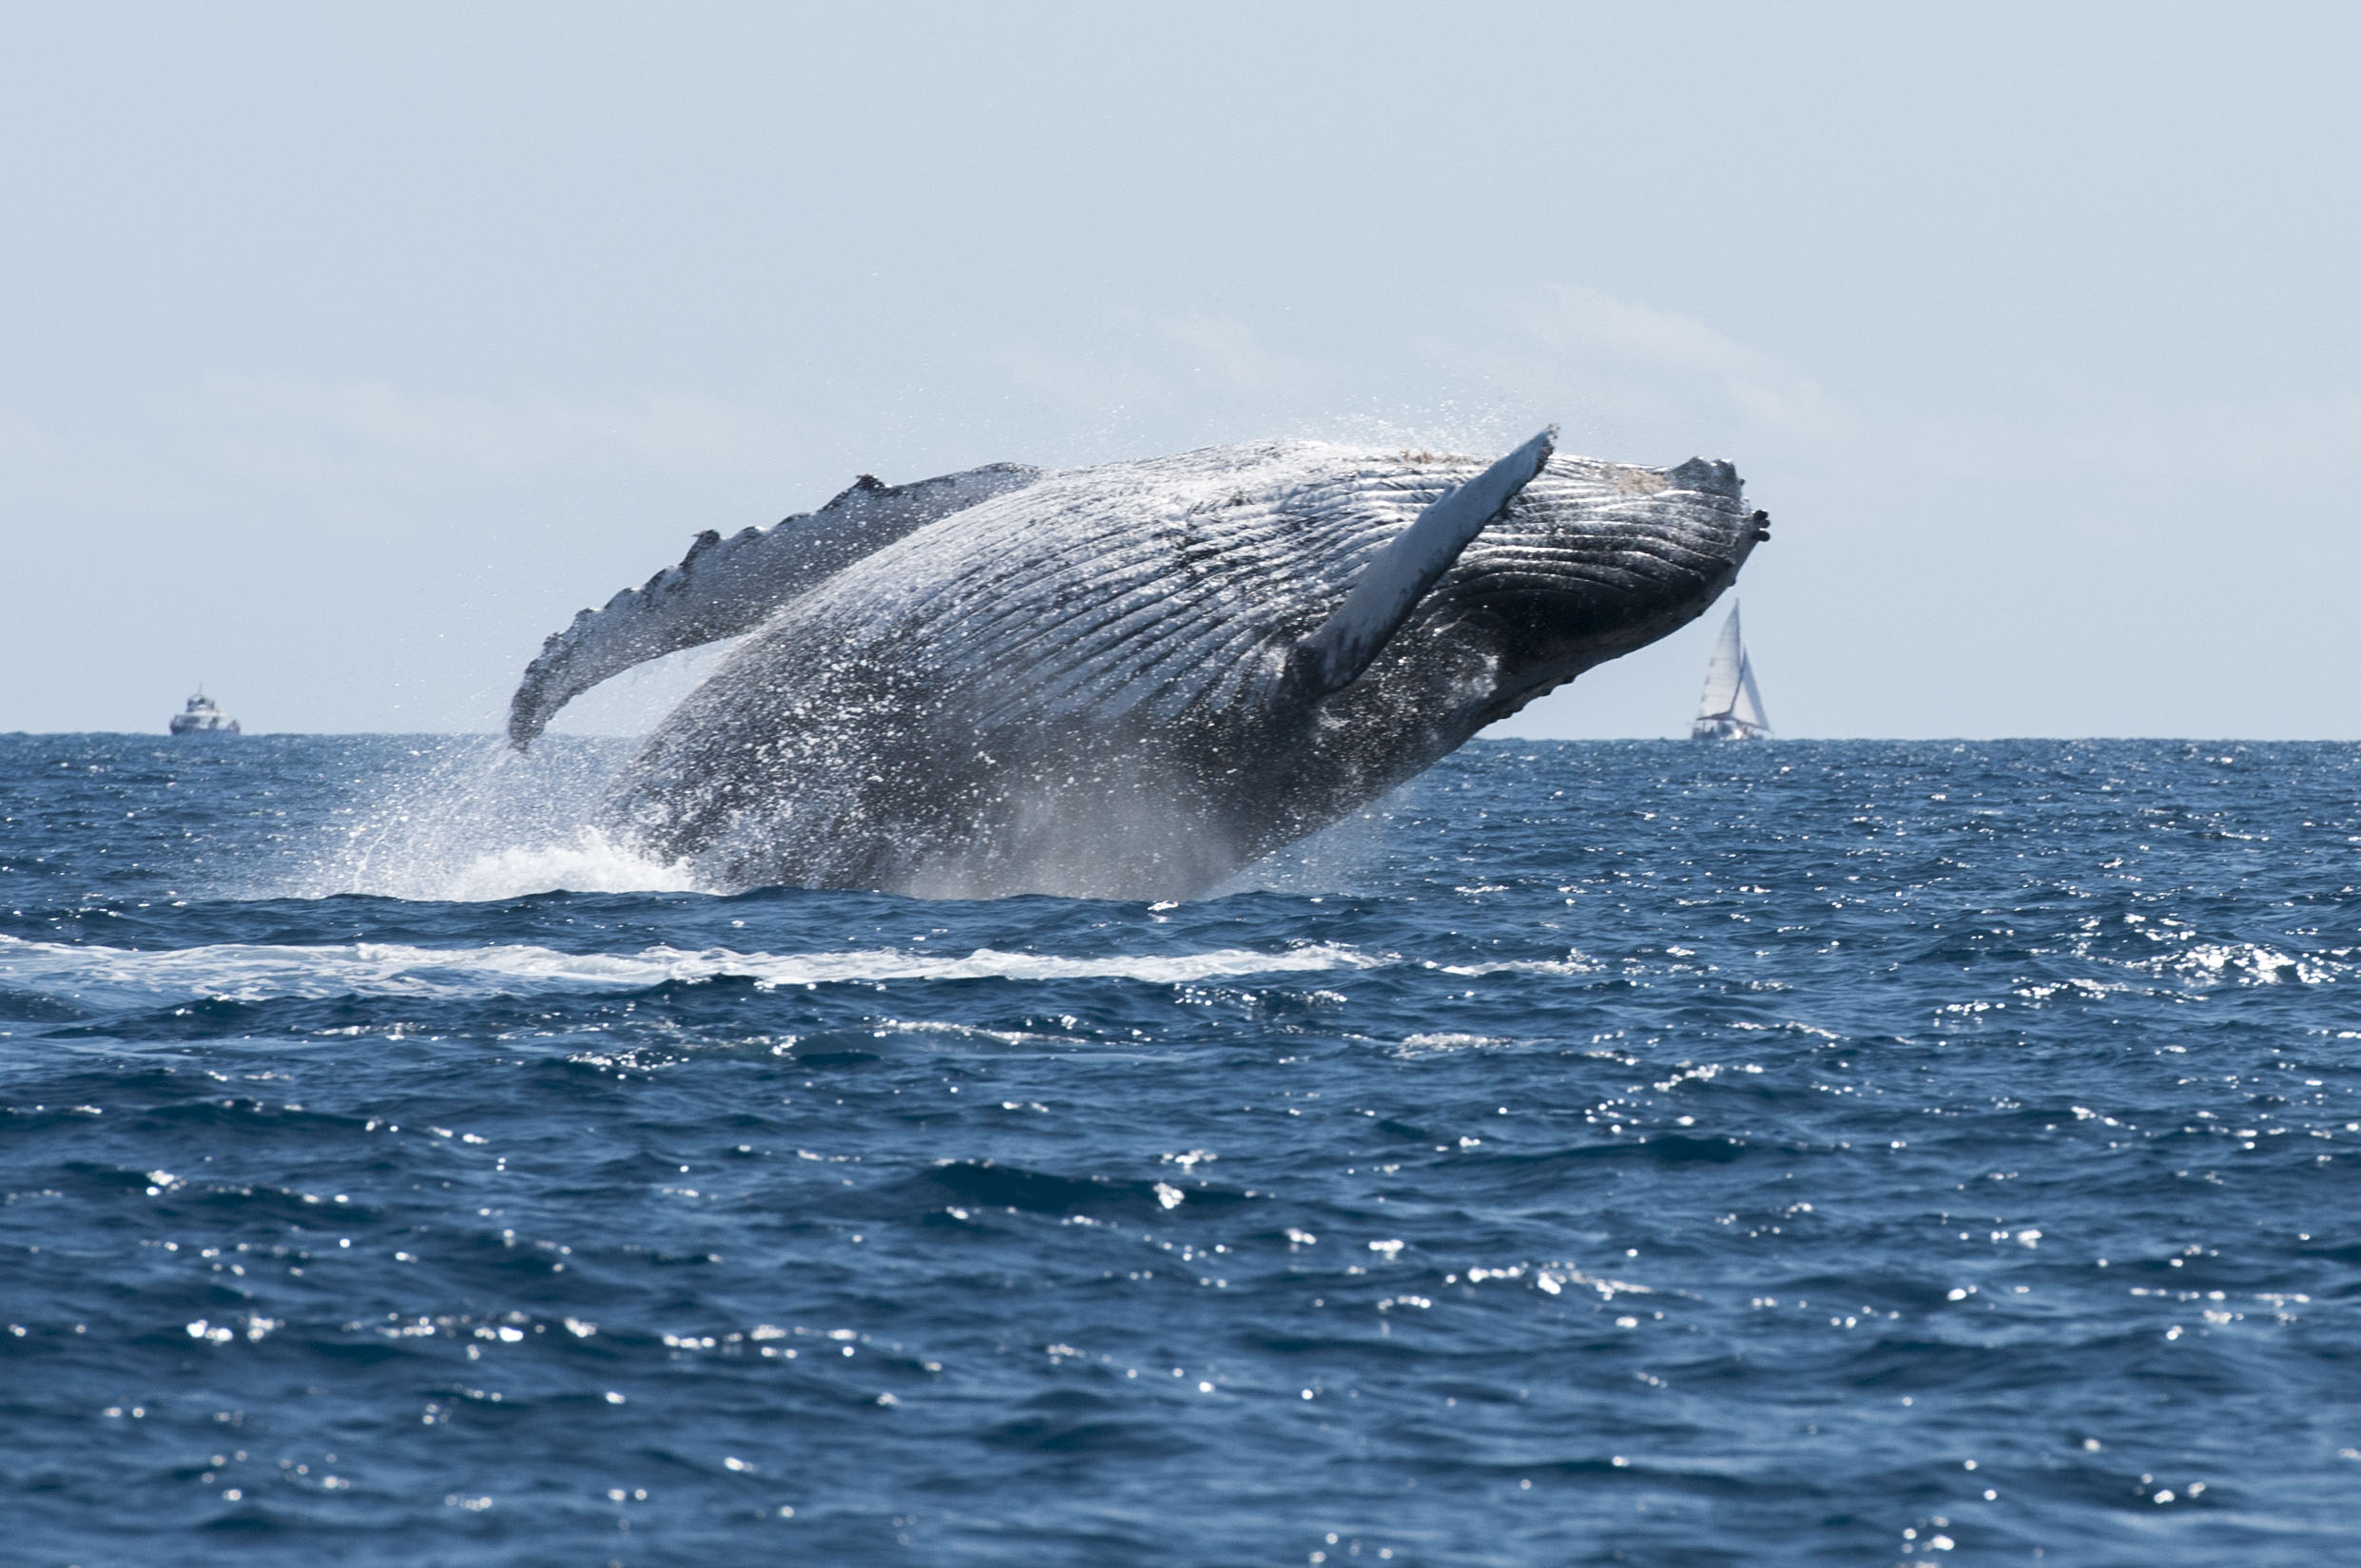 ocean and great blue whale Amazing facts about the blue whale the blue whale is the largest animal ever to have lived on earth despite being so massive, this giant of the ocean feeds on some of the smallest marine life - tiny shrimp like animals called krill.